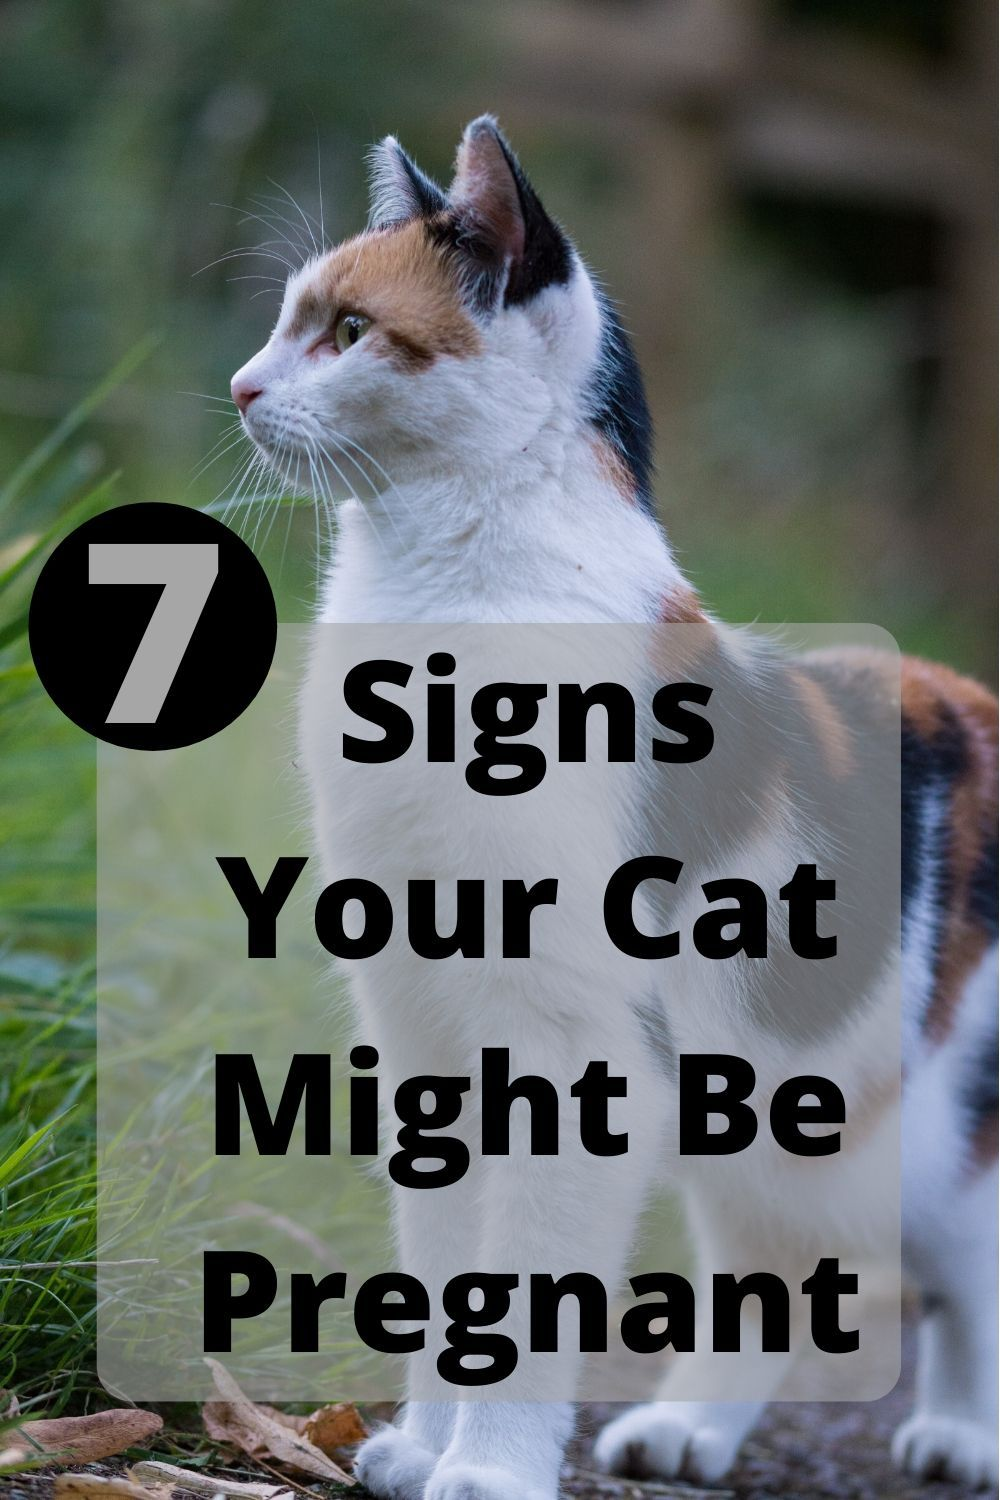 7 Signs Your Cat Might Be Pregnant Welfar4us In 2020 Cats Cute Cats And Dogs Cat Life Hacks